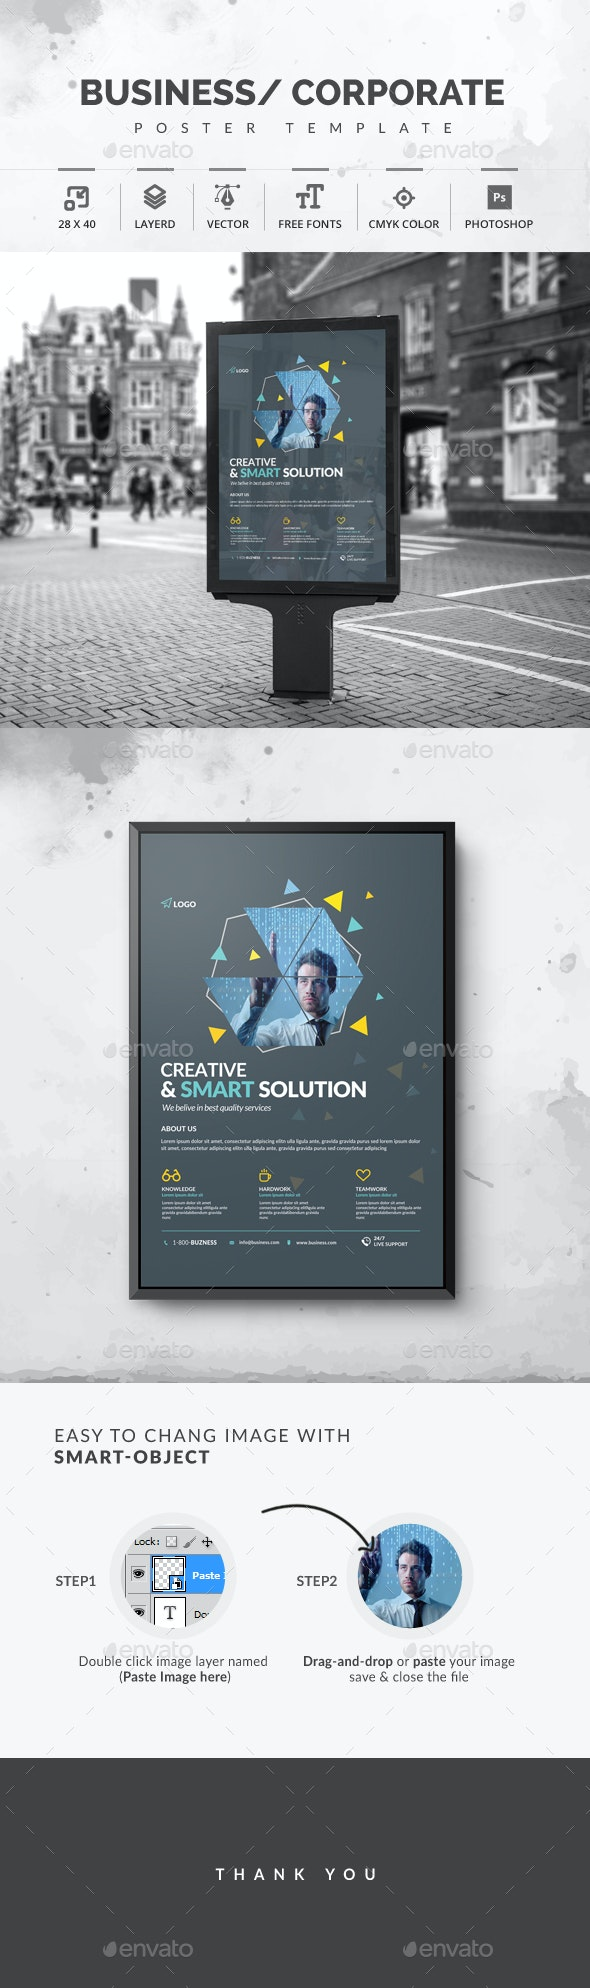 Corporate Business Poster - Signage Print Templates